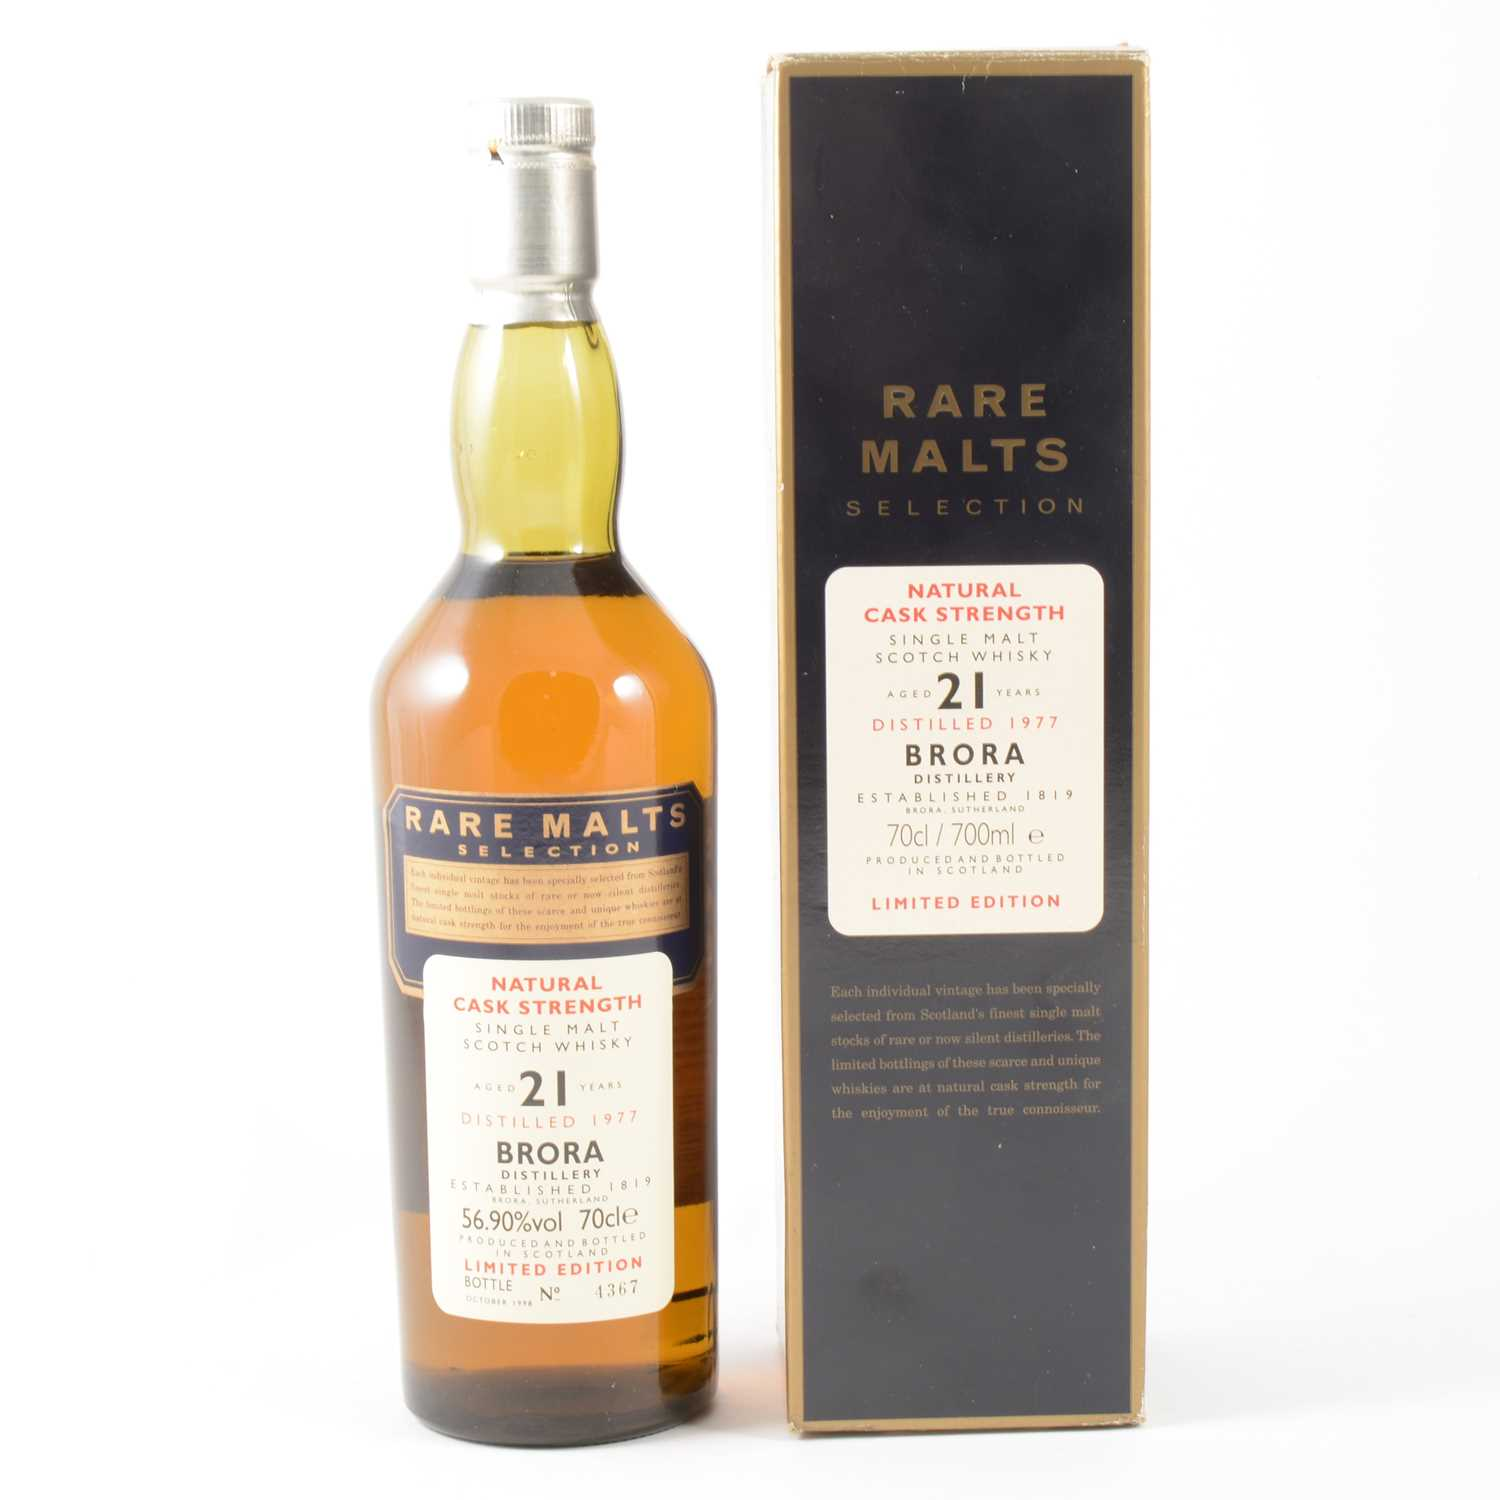 Lot 304 - BRORA - 1977, 21 years old, Rare Malts Selection, limited edition single malt whisky